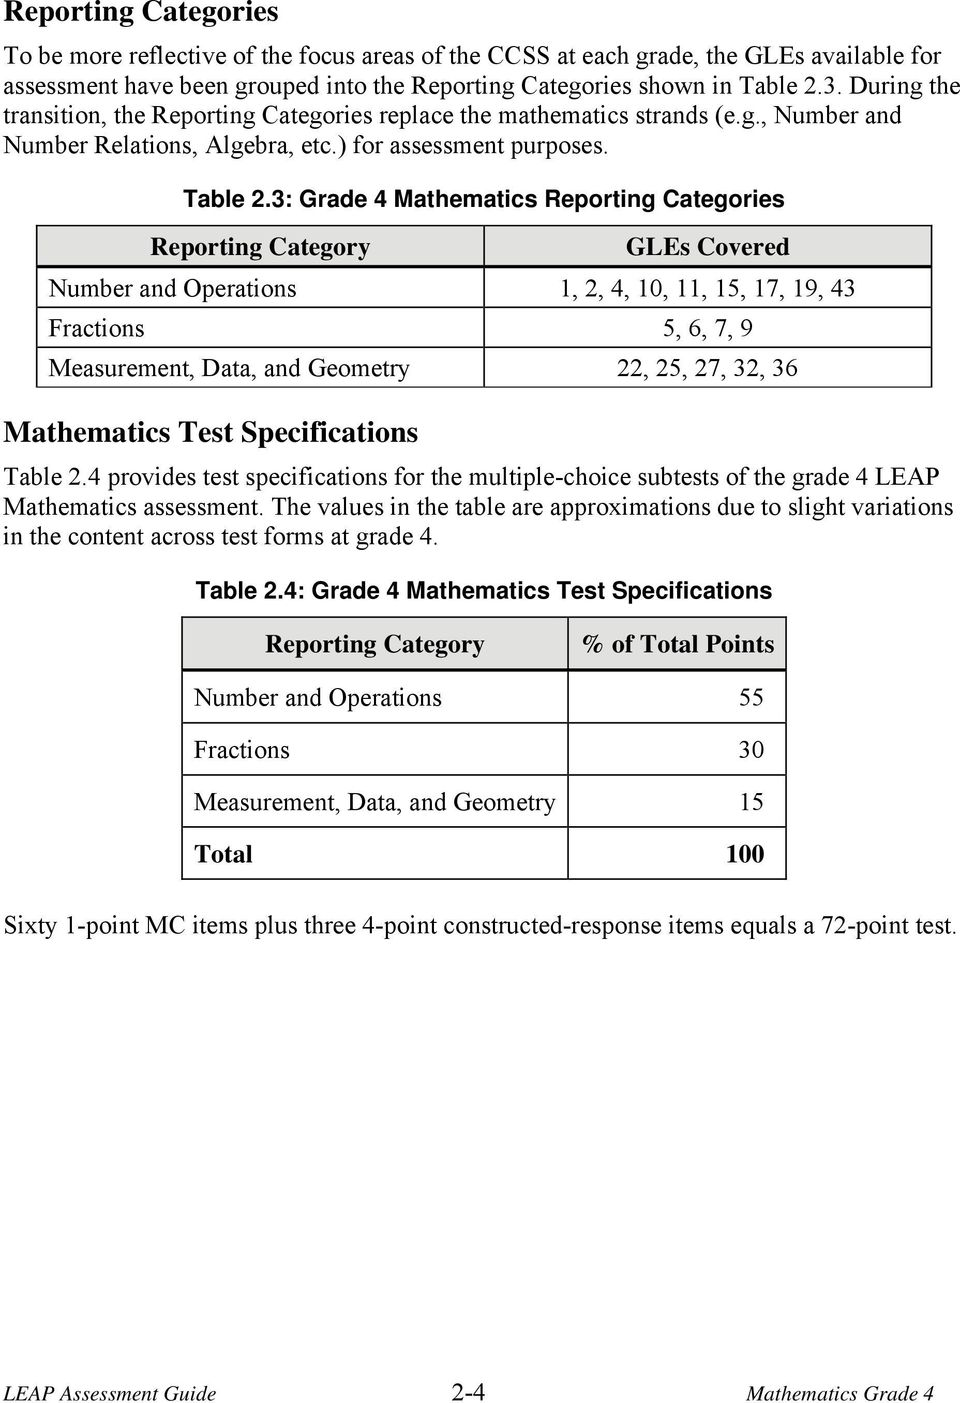 Chapter 2: LEAP Mathematics, Grade 4 - PDF